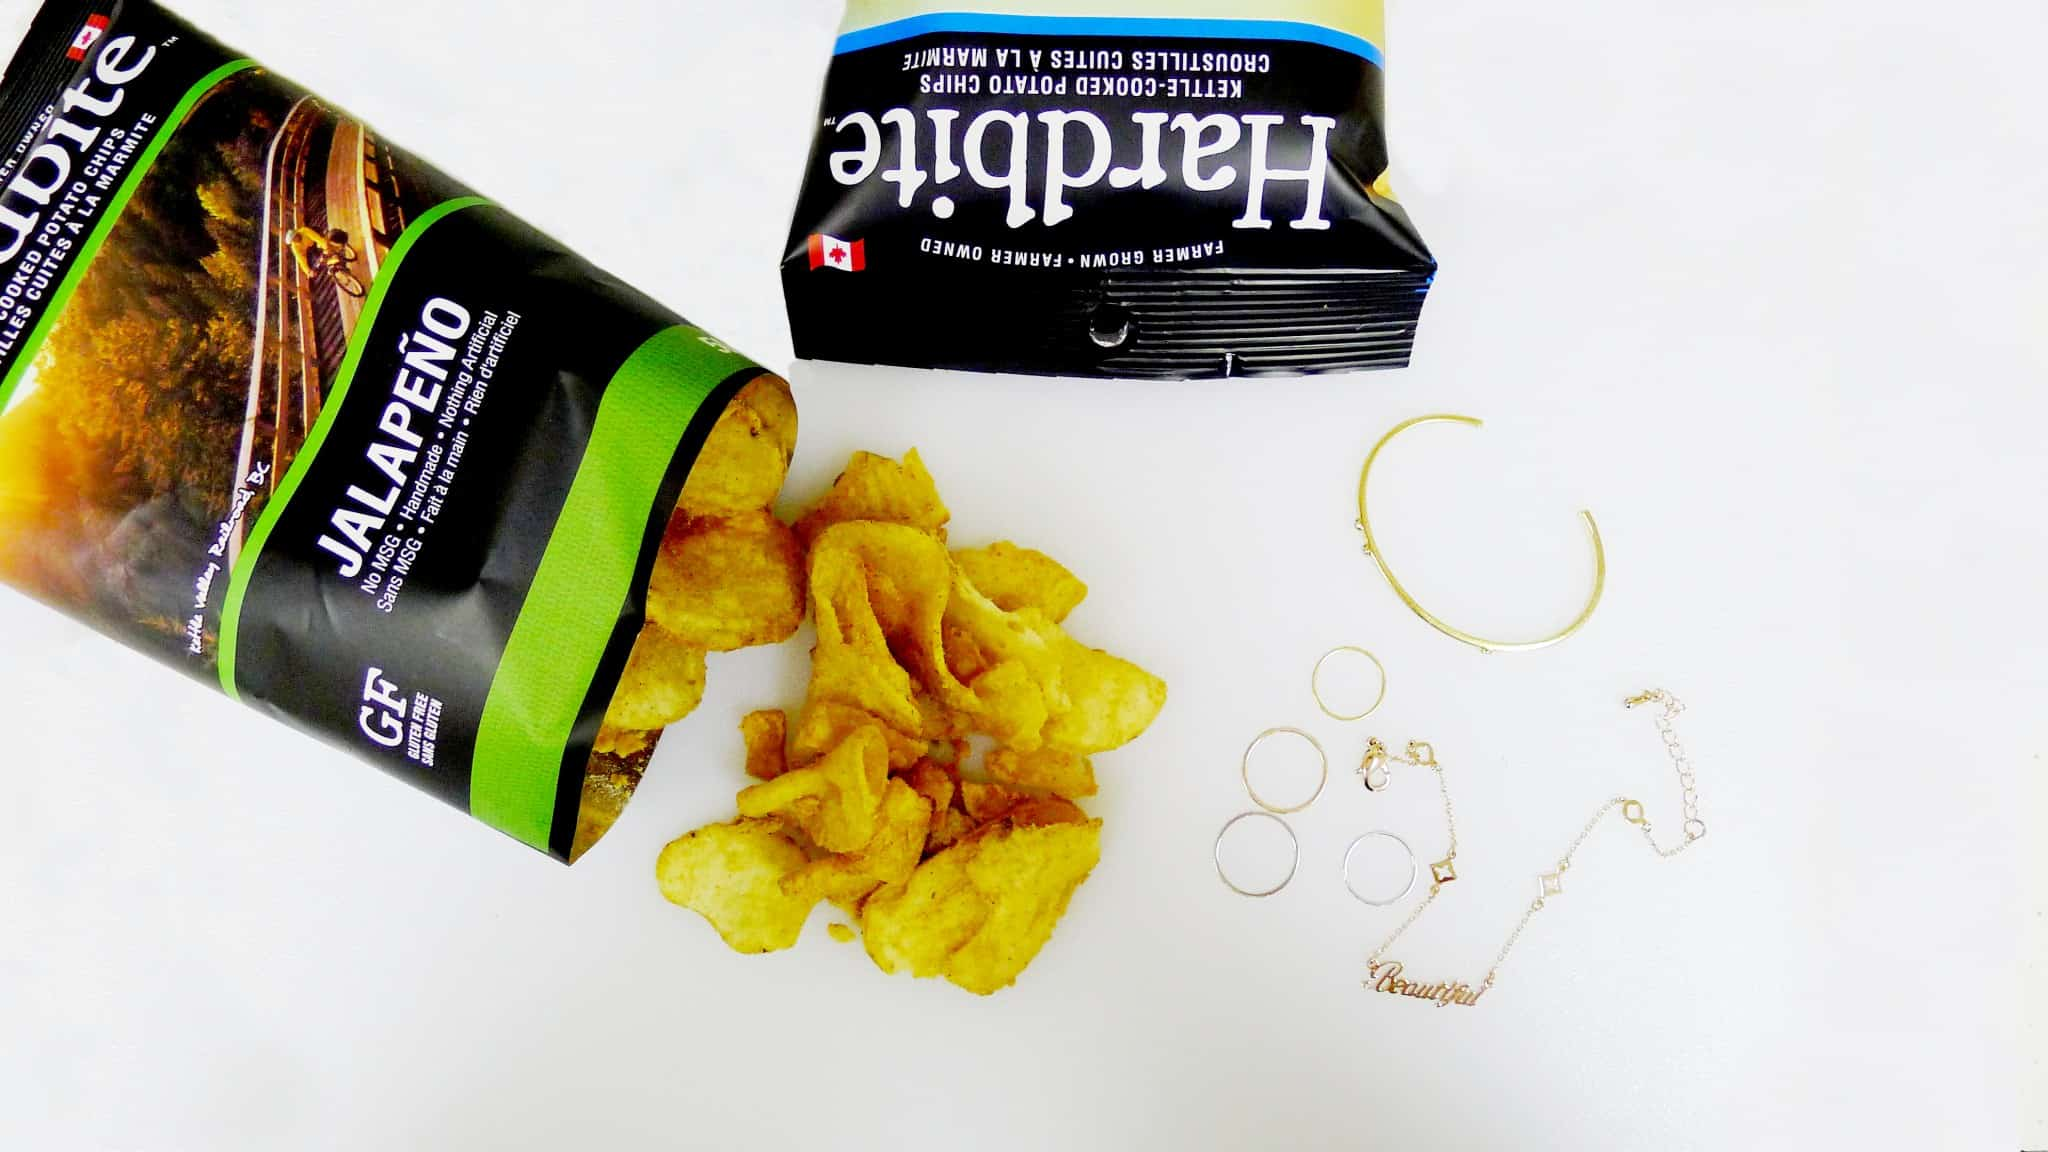 Hardbite Chips Review | No Artificial Anything Chips